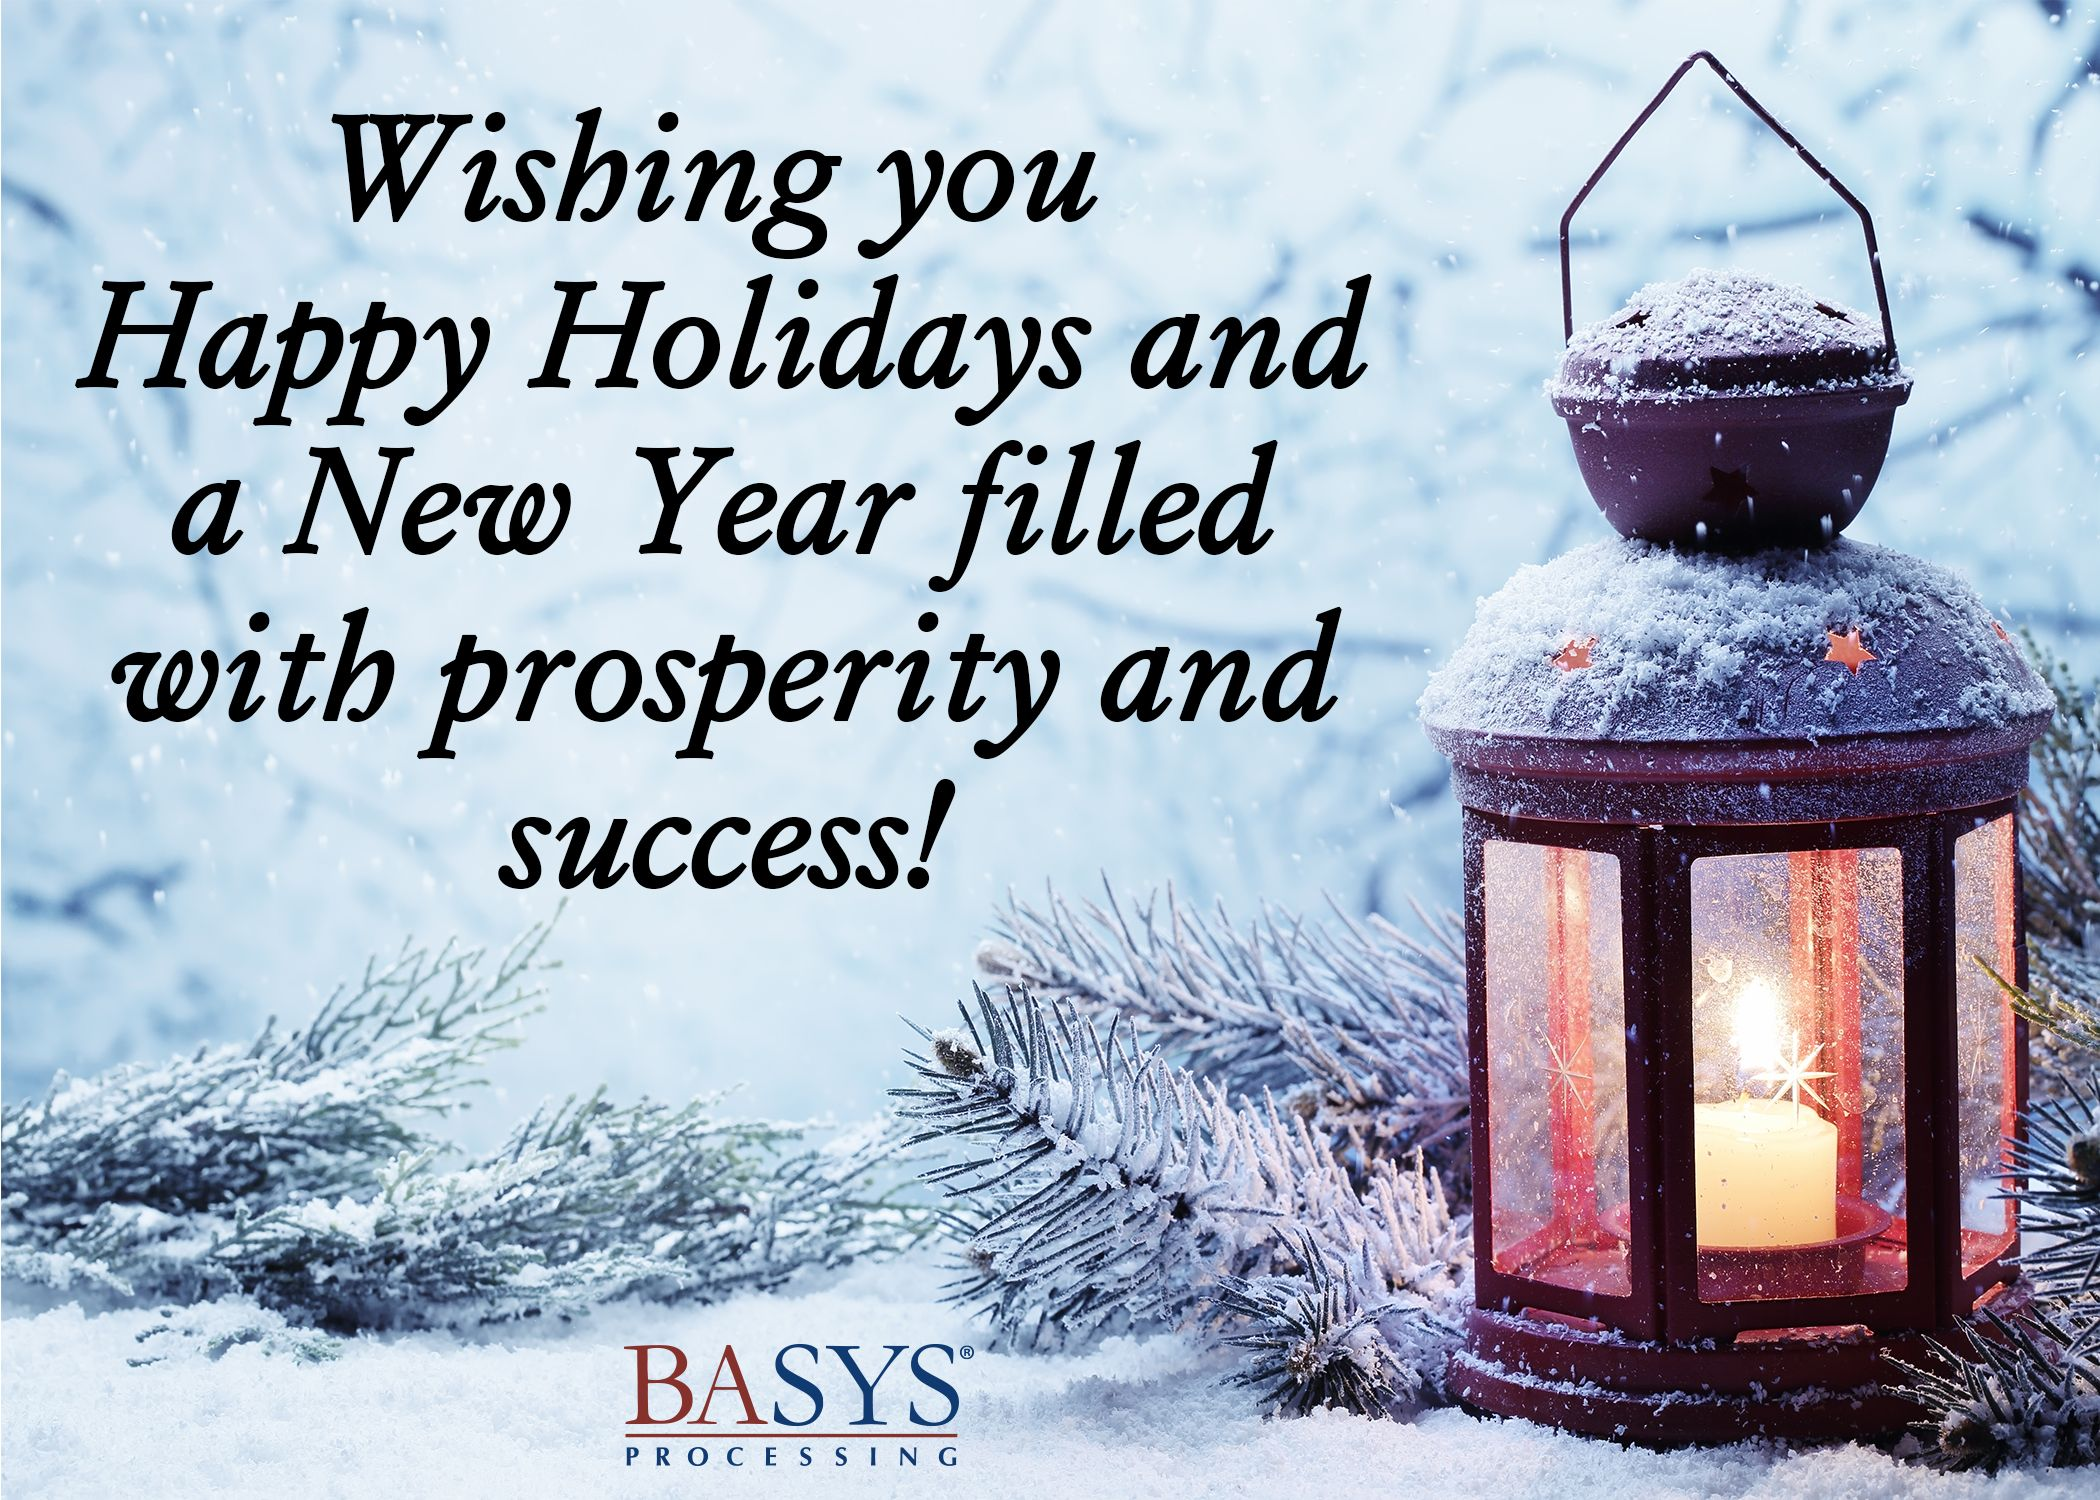 Happy Holidays And Seasons Greetings To You And Your Family From